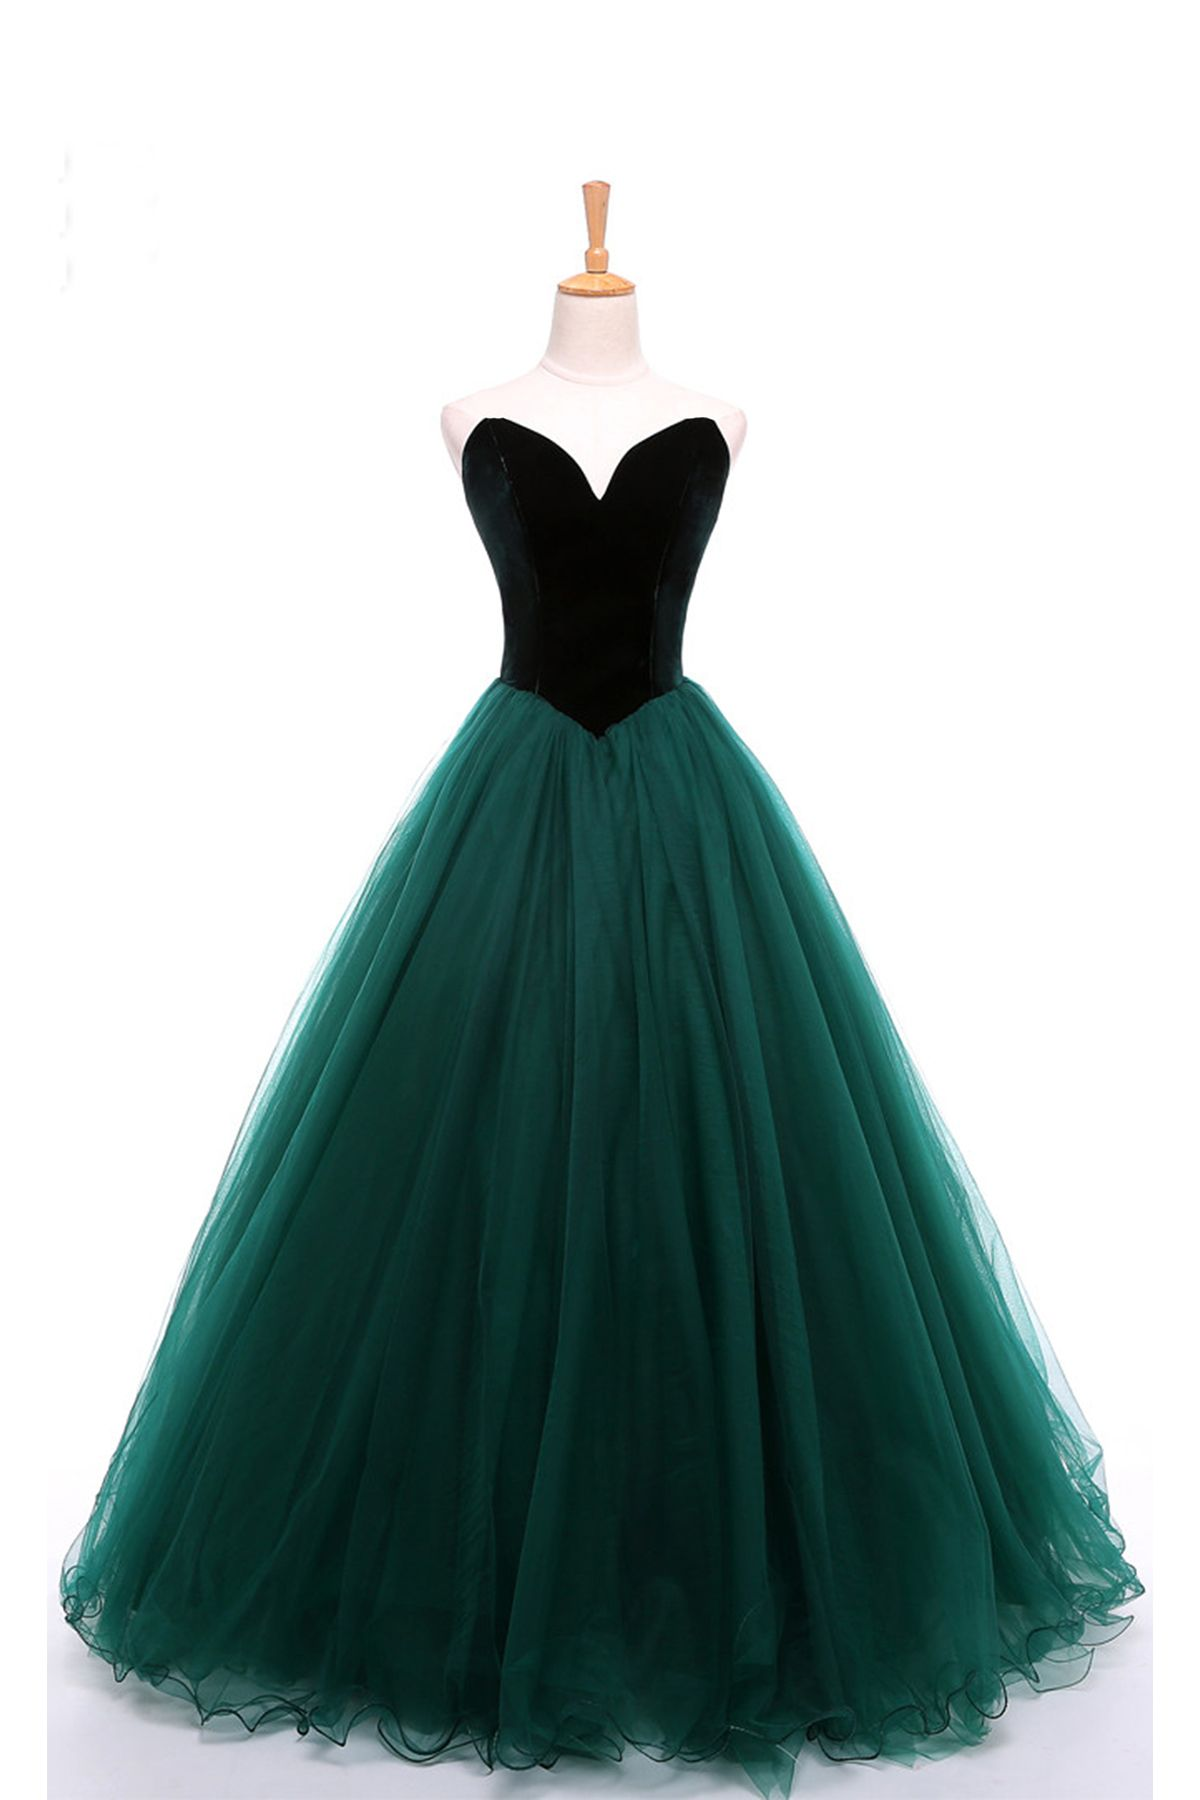 Sweetheart deep green velvet long tulle aline formal prom dress